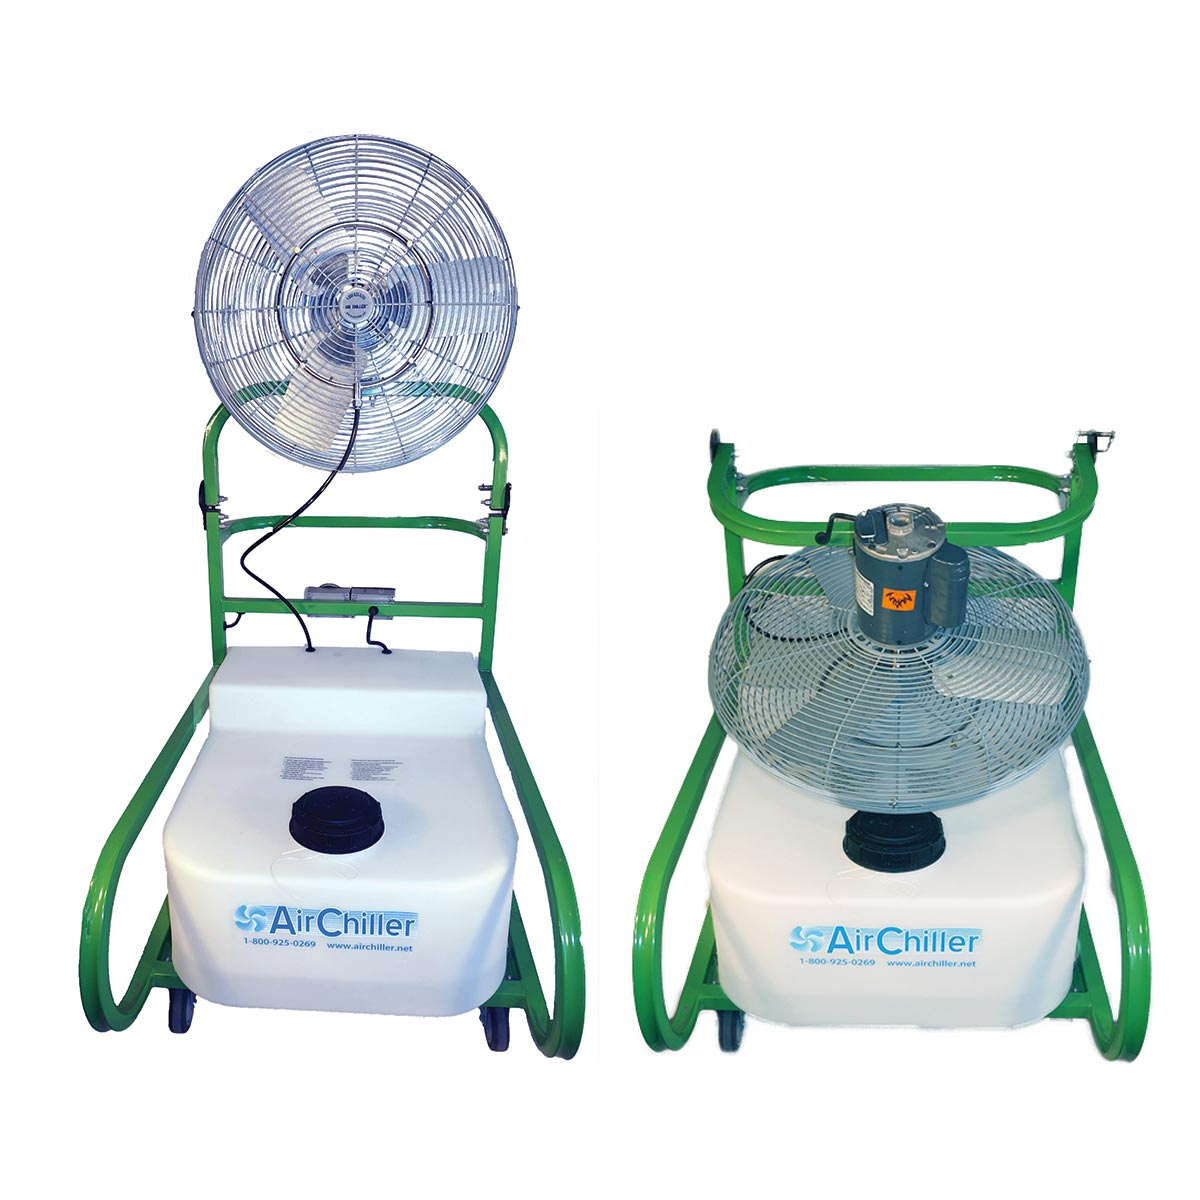 Air Chiller FD-24 Inch Misting Fan Evaporative Cooler 10000 cfm 32 gallon Fold Down Top